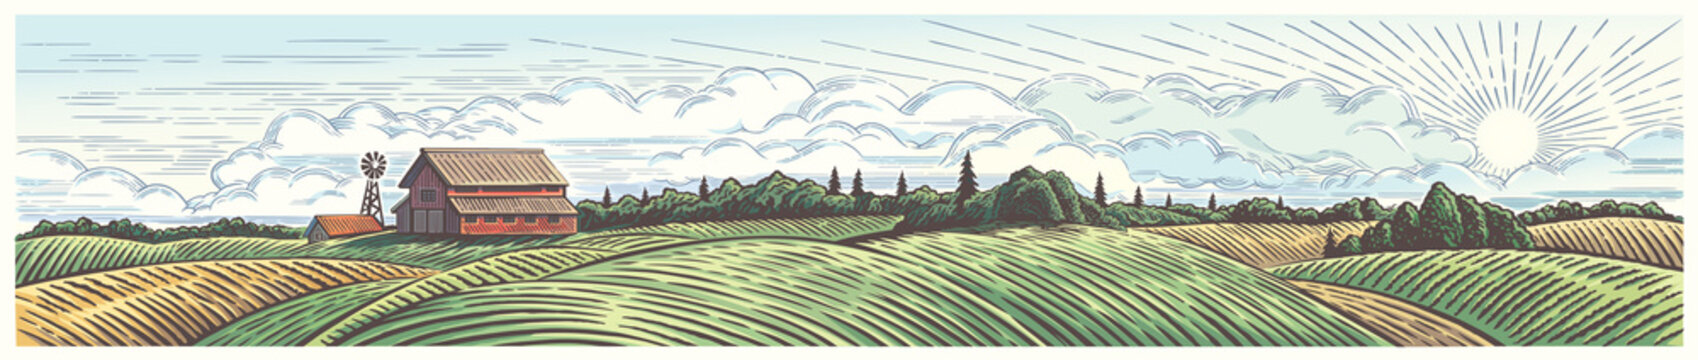 Rural landscape, panoramic format with a farm with and agricultural fields around.